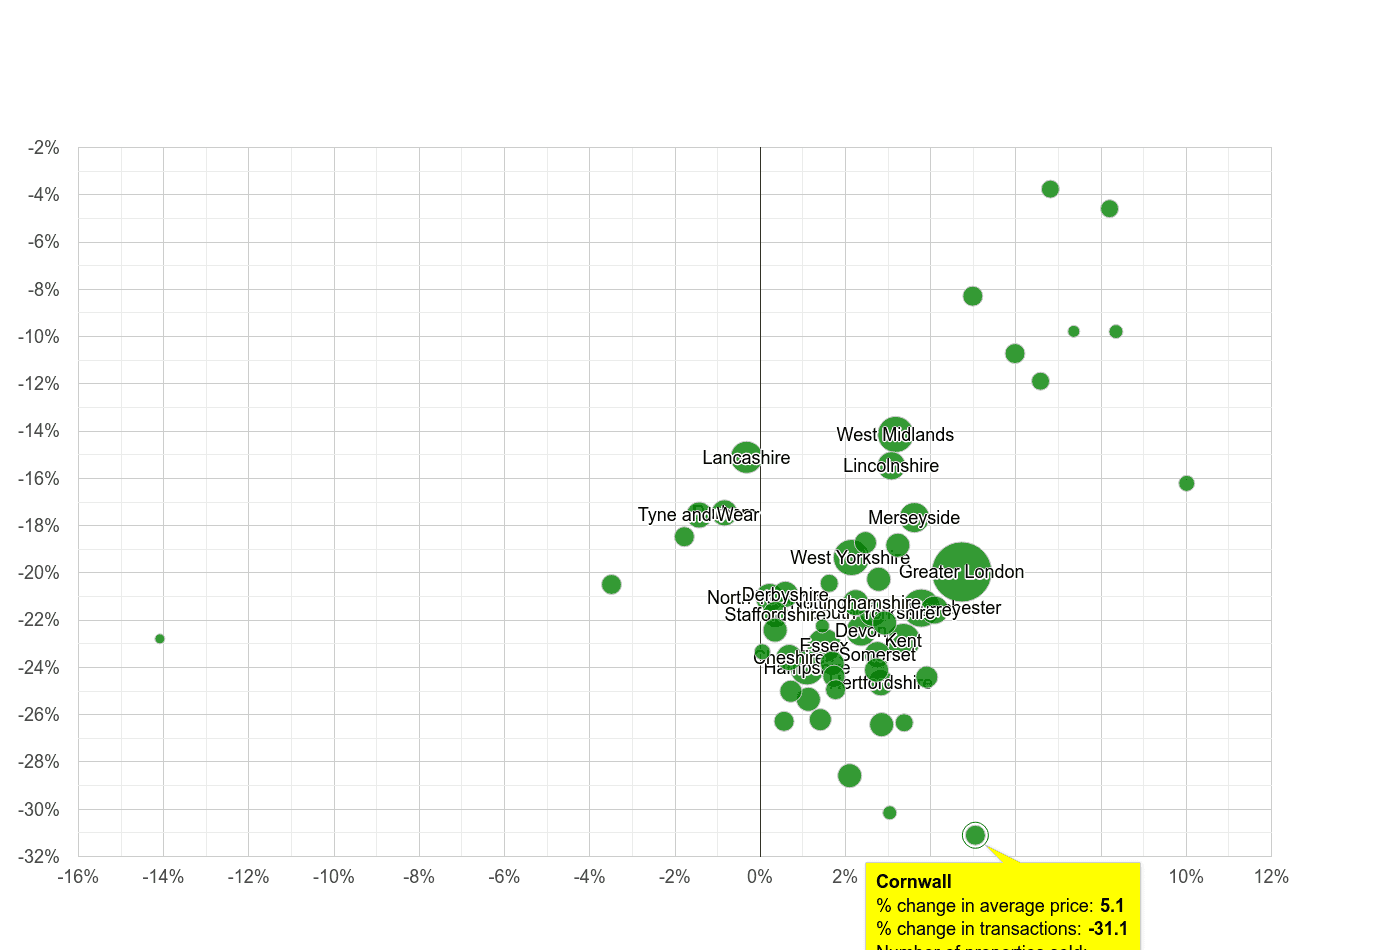 Cornwall property price and sales volume change relative to other counties